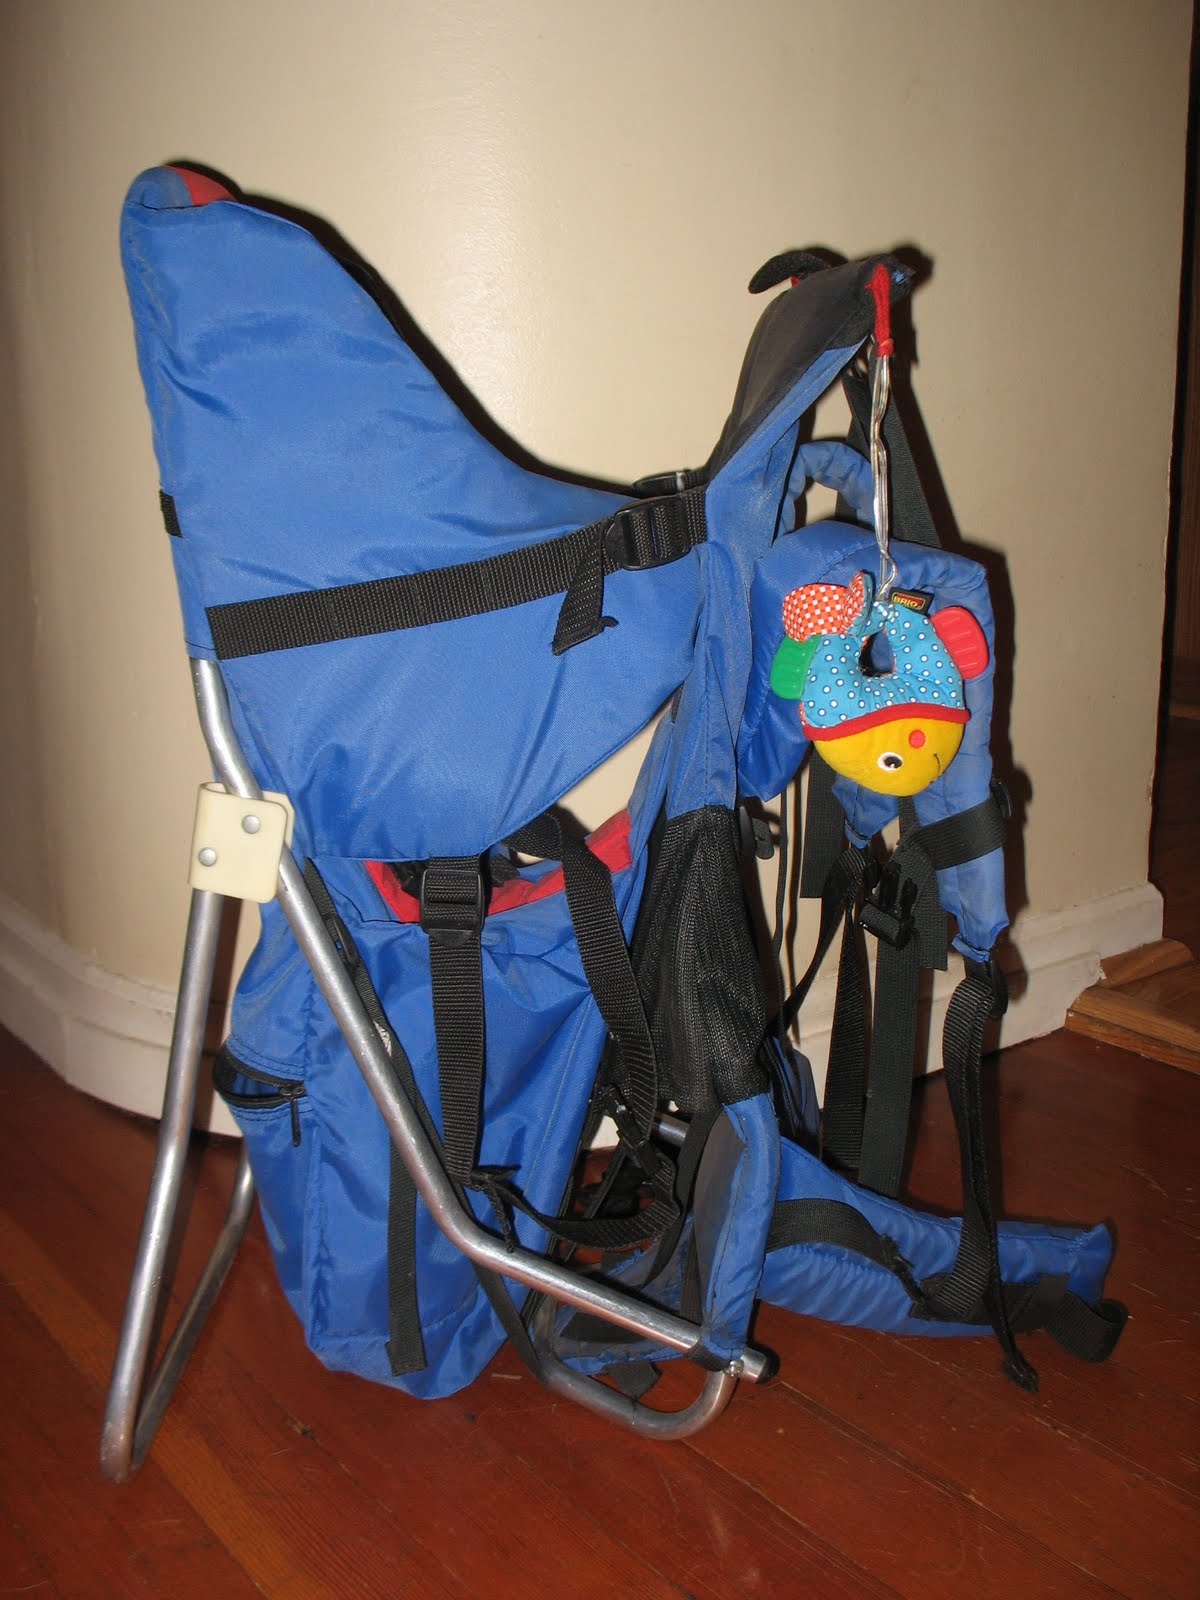 cf934fd0843 Today s Thing  Kelty Tough Traveler Kid s Backpack Carrier